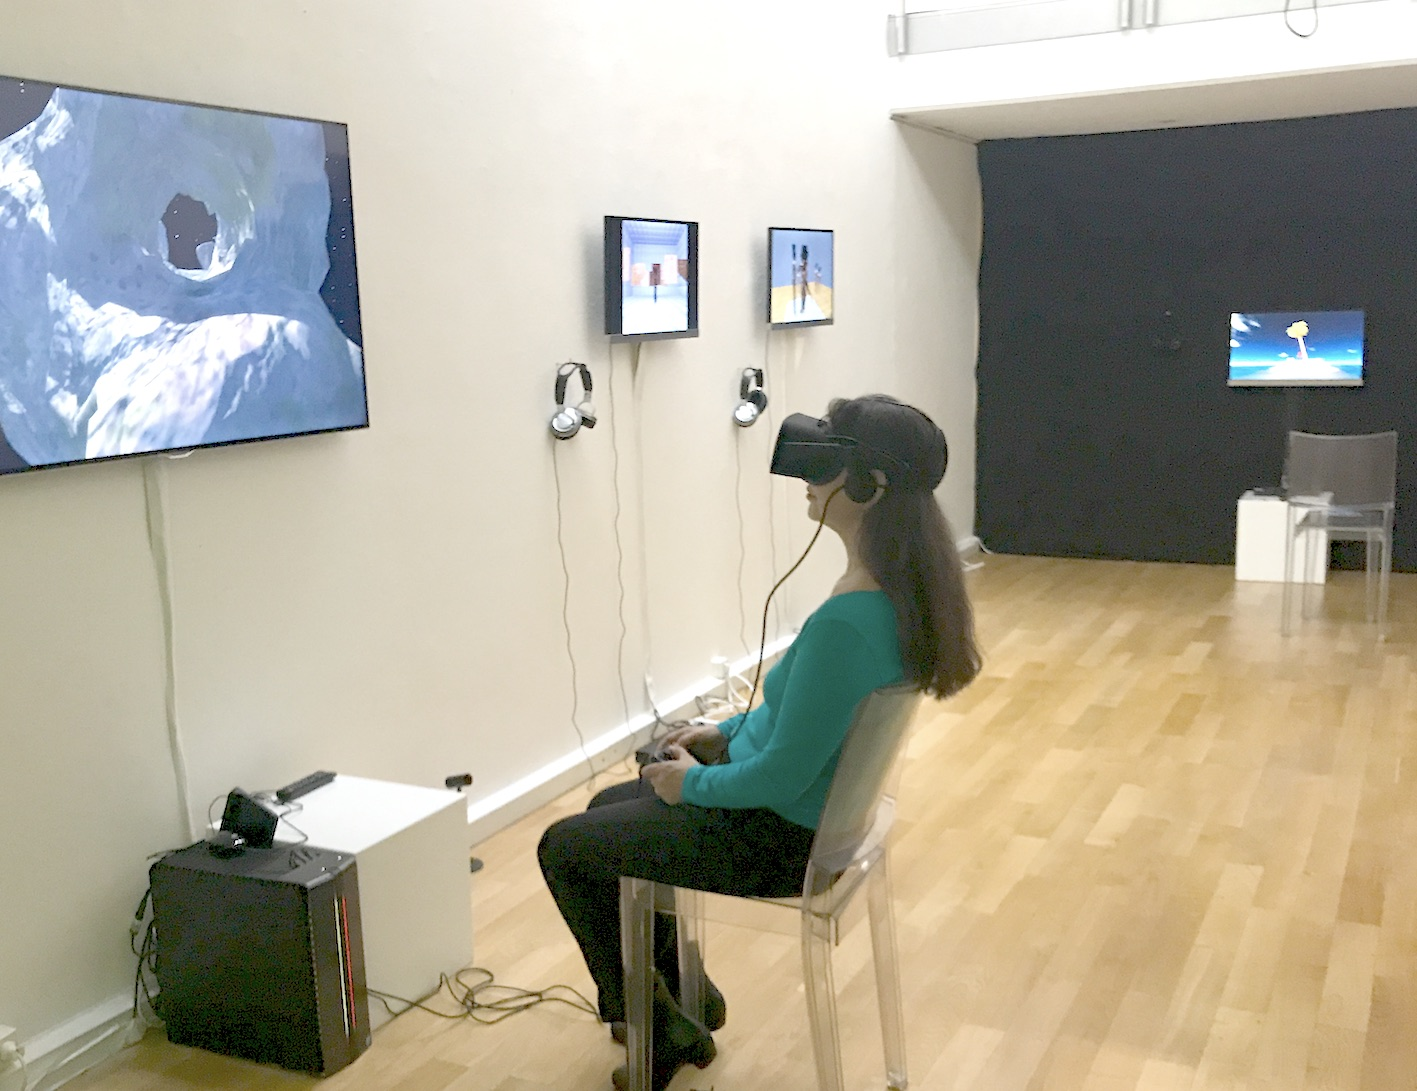 Exhibition view RESET III AND VIRTUAL REALITY, photo by Nathan Ishar / Artworks: DiMoDA and videos by Gazira Babeli and Patrick Lichty